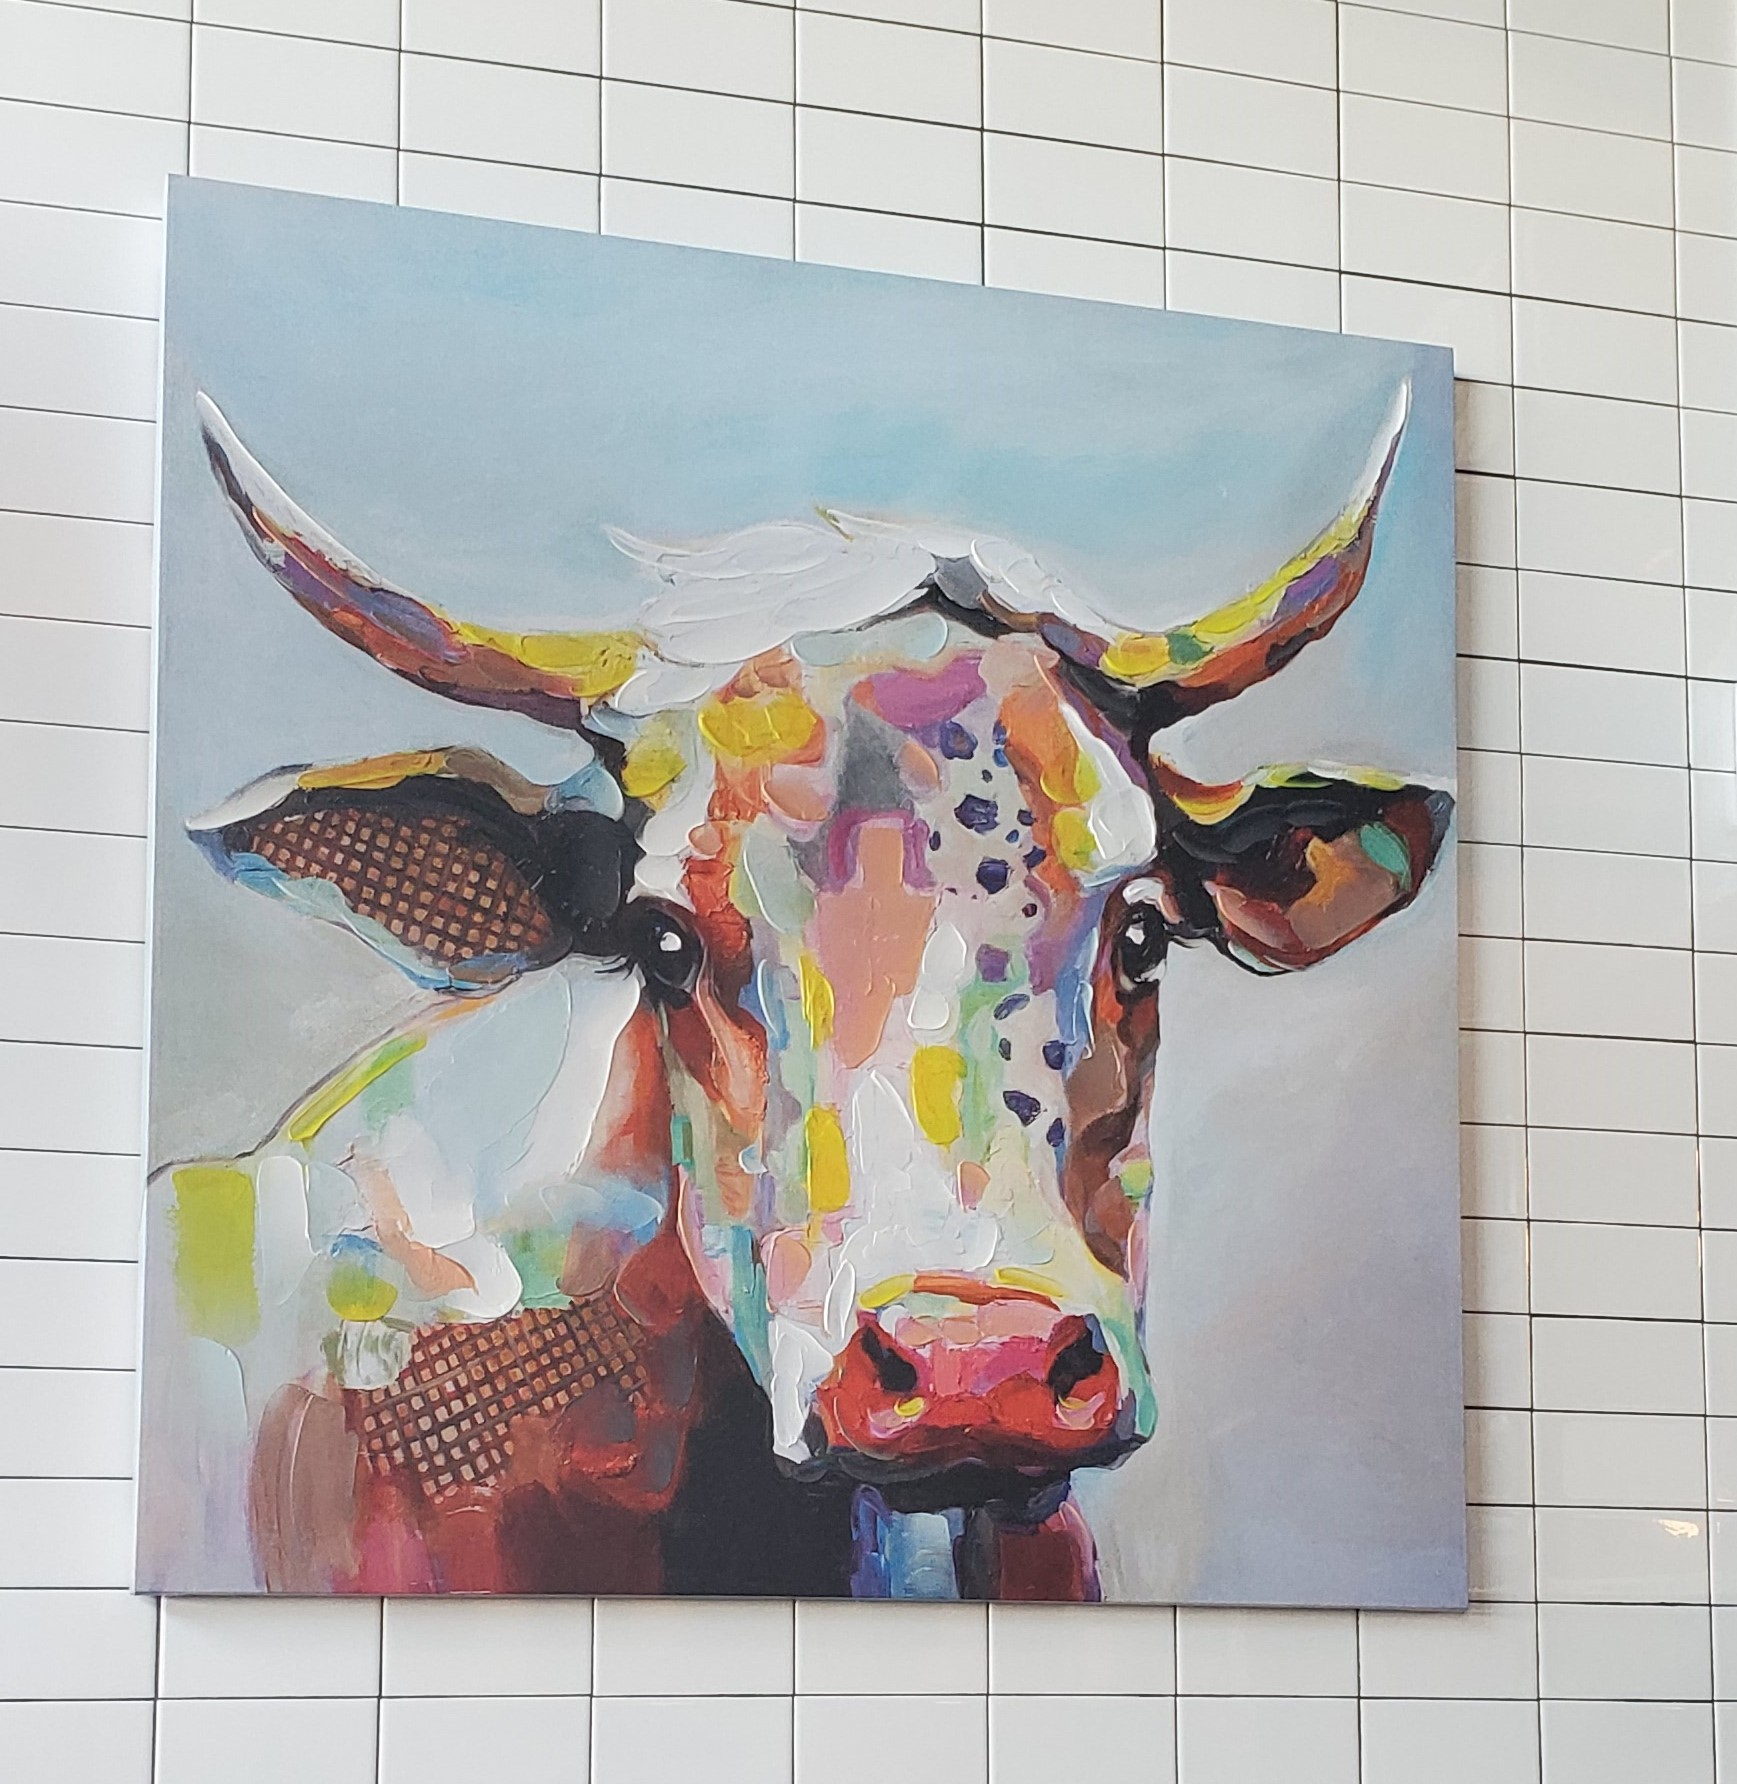 DIG Scottsdale OEB Breakfast Co eclectic art cow